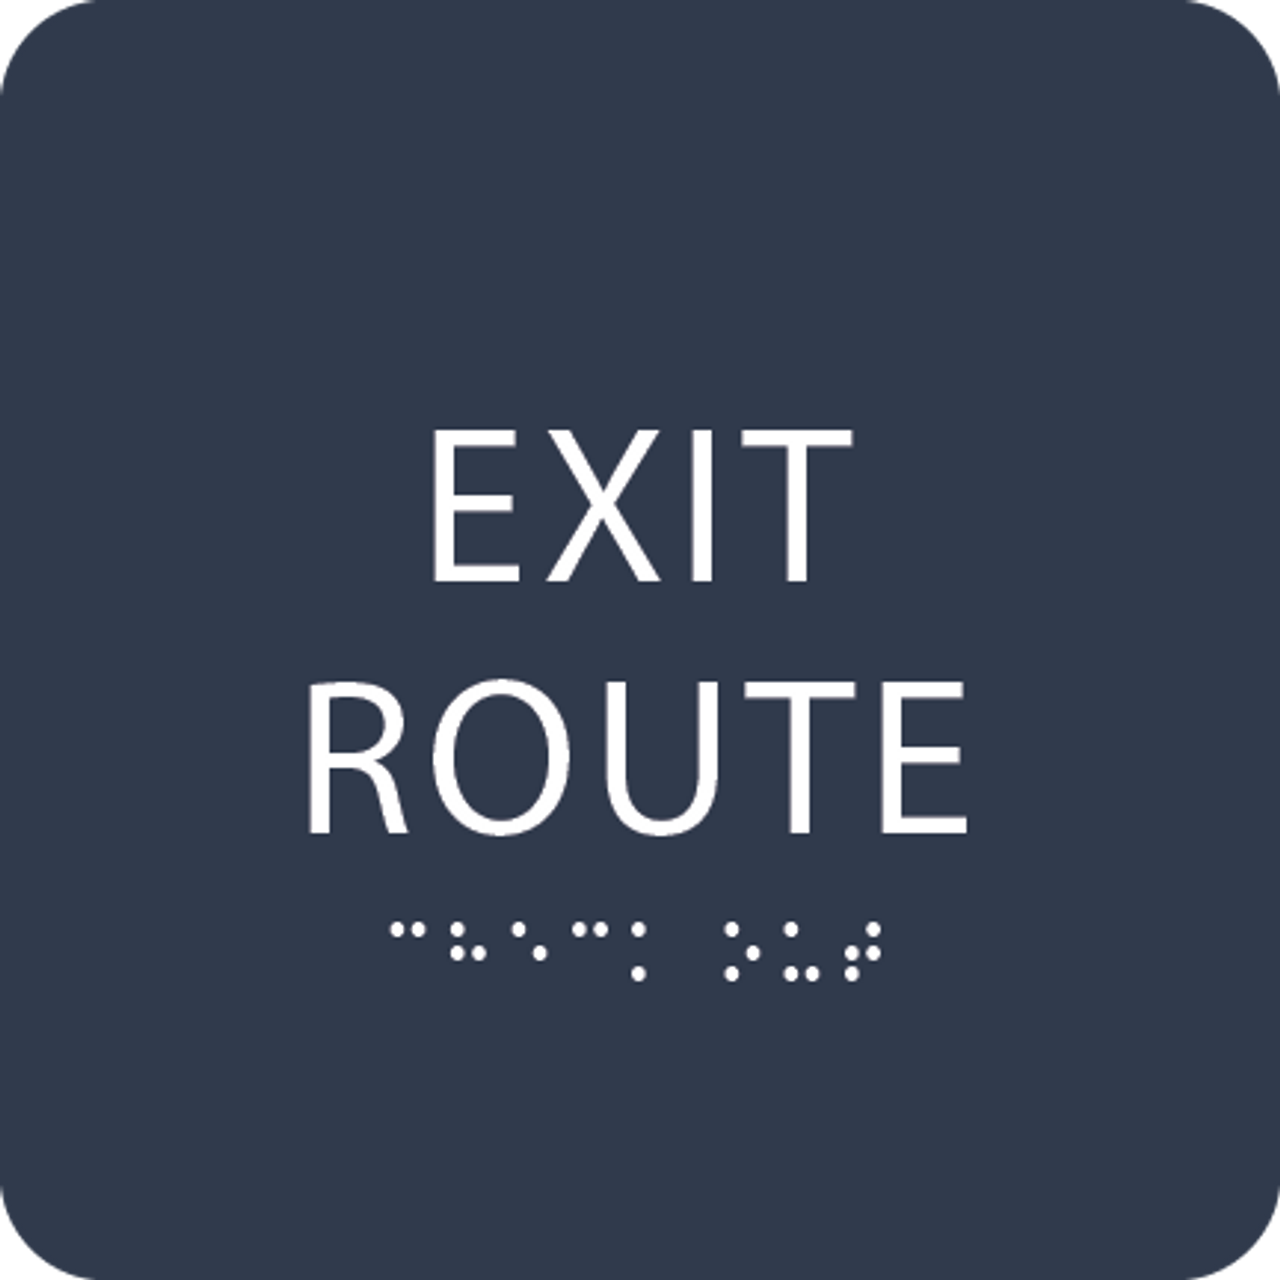 Navy Tactile Exit Route Sign